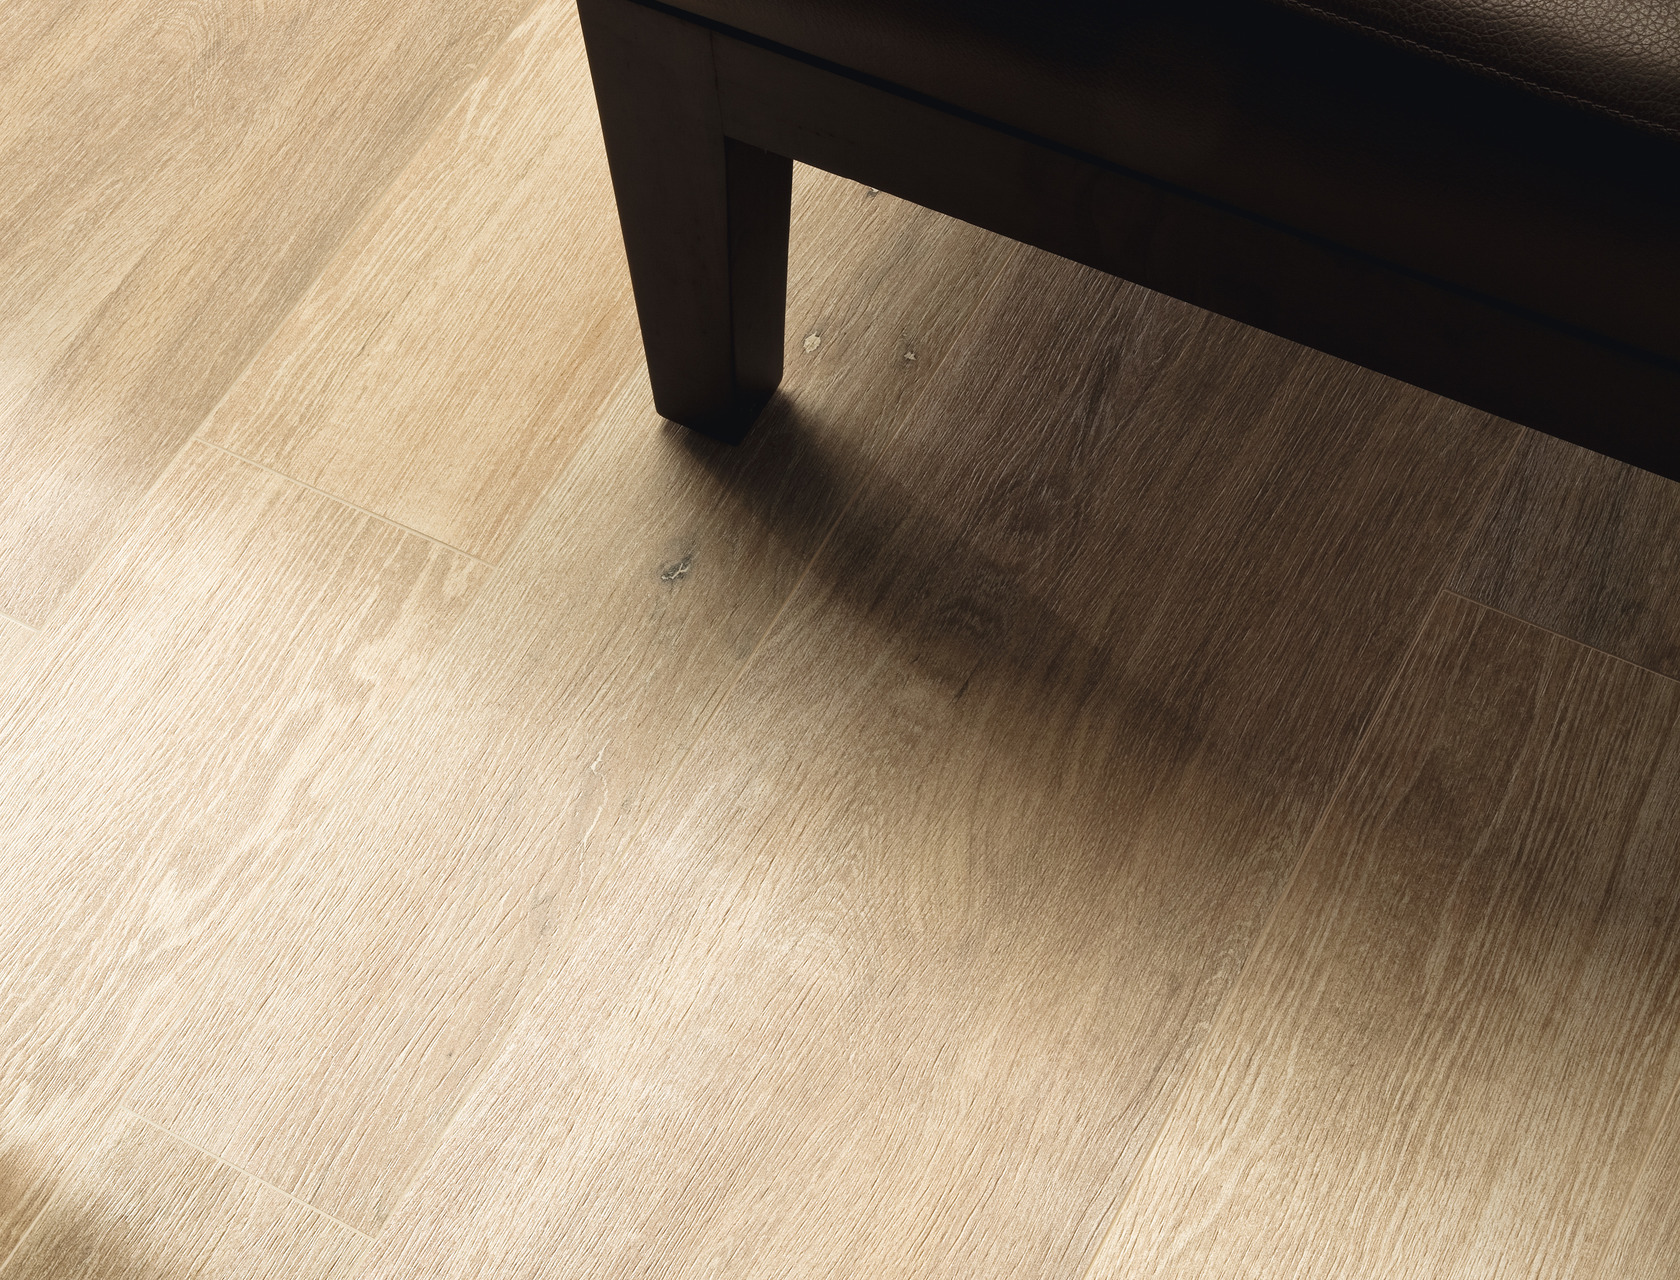 Wood Effect Beige Porcelain Tiles Rovere Decapè